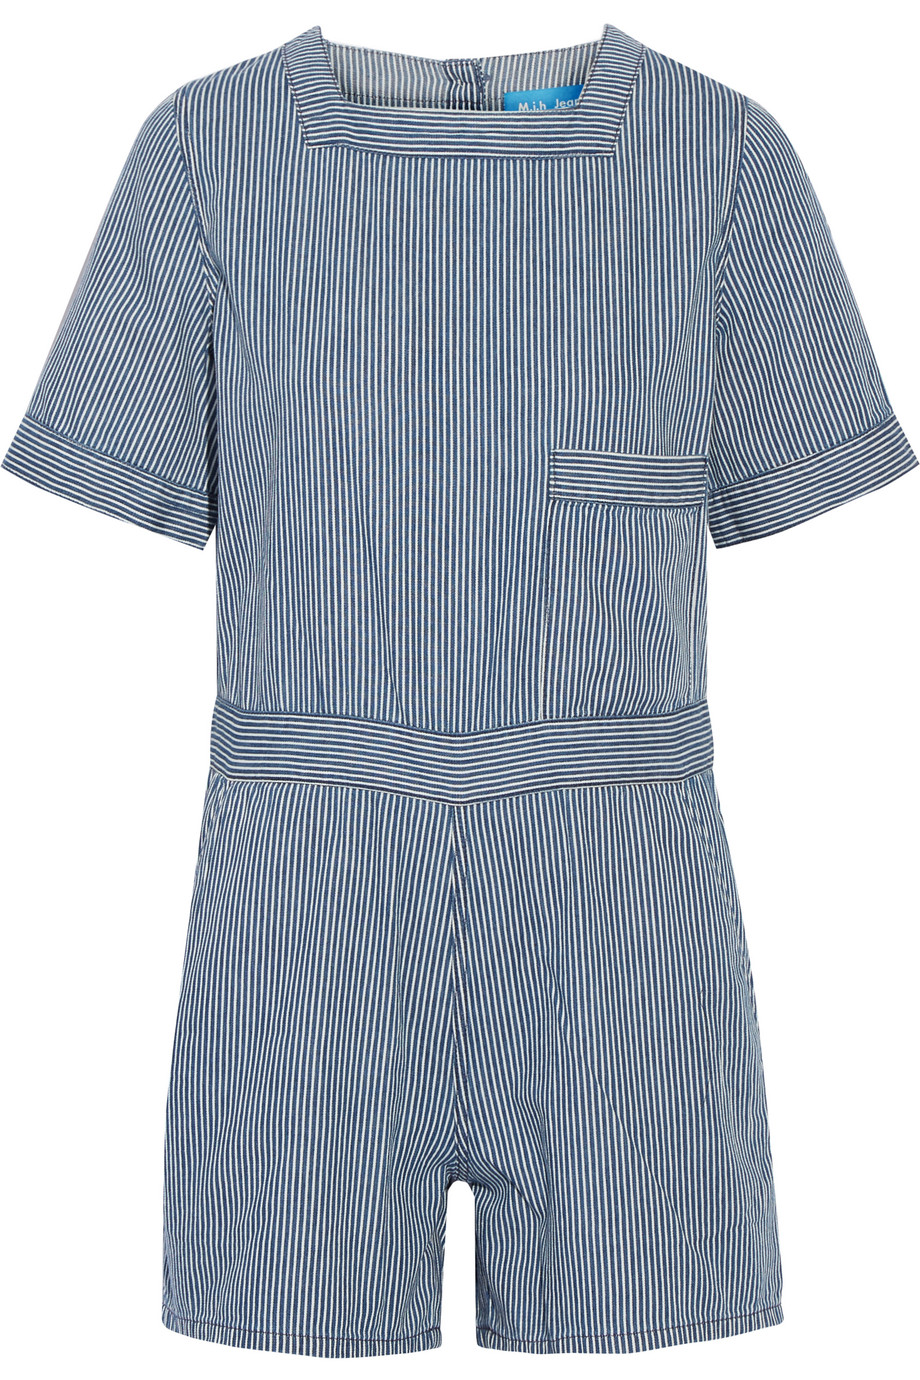 Biarritz Striped Cotton Playsuit, Blue, Women's, Size: XS